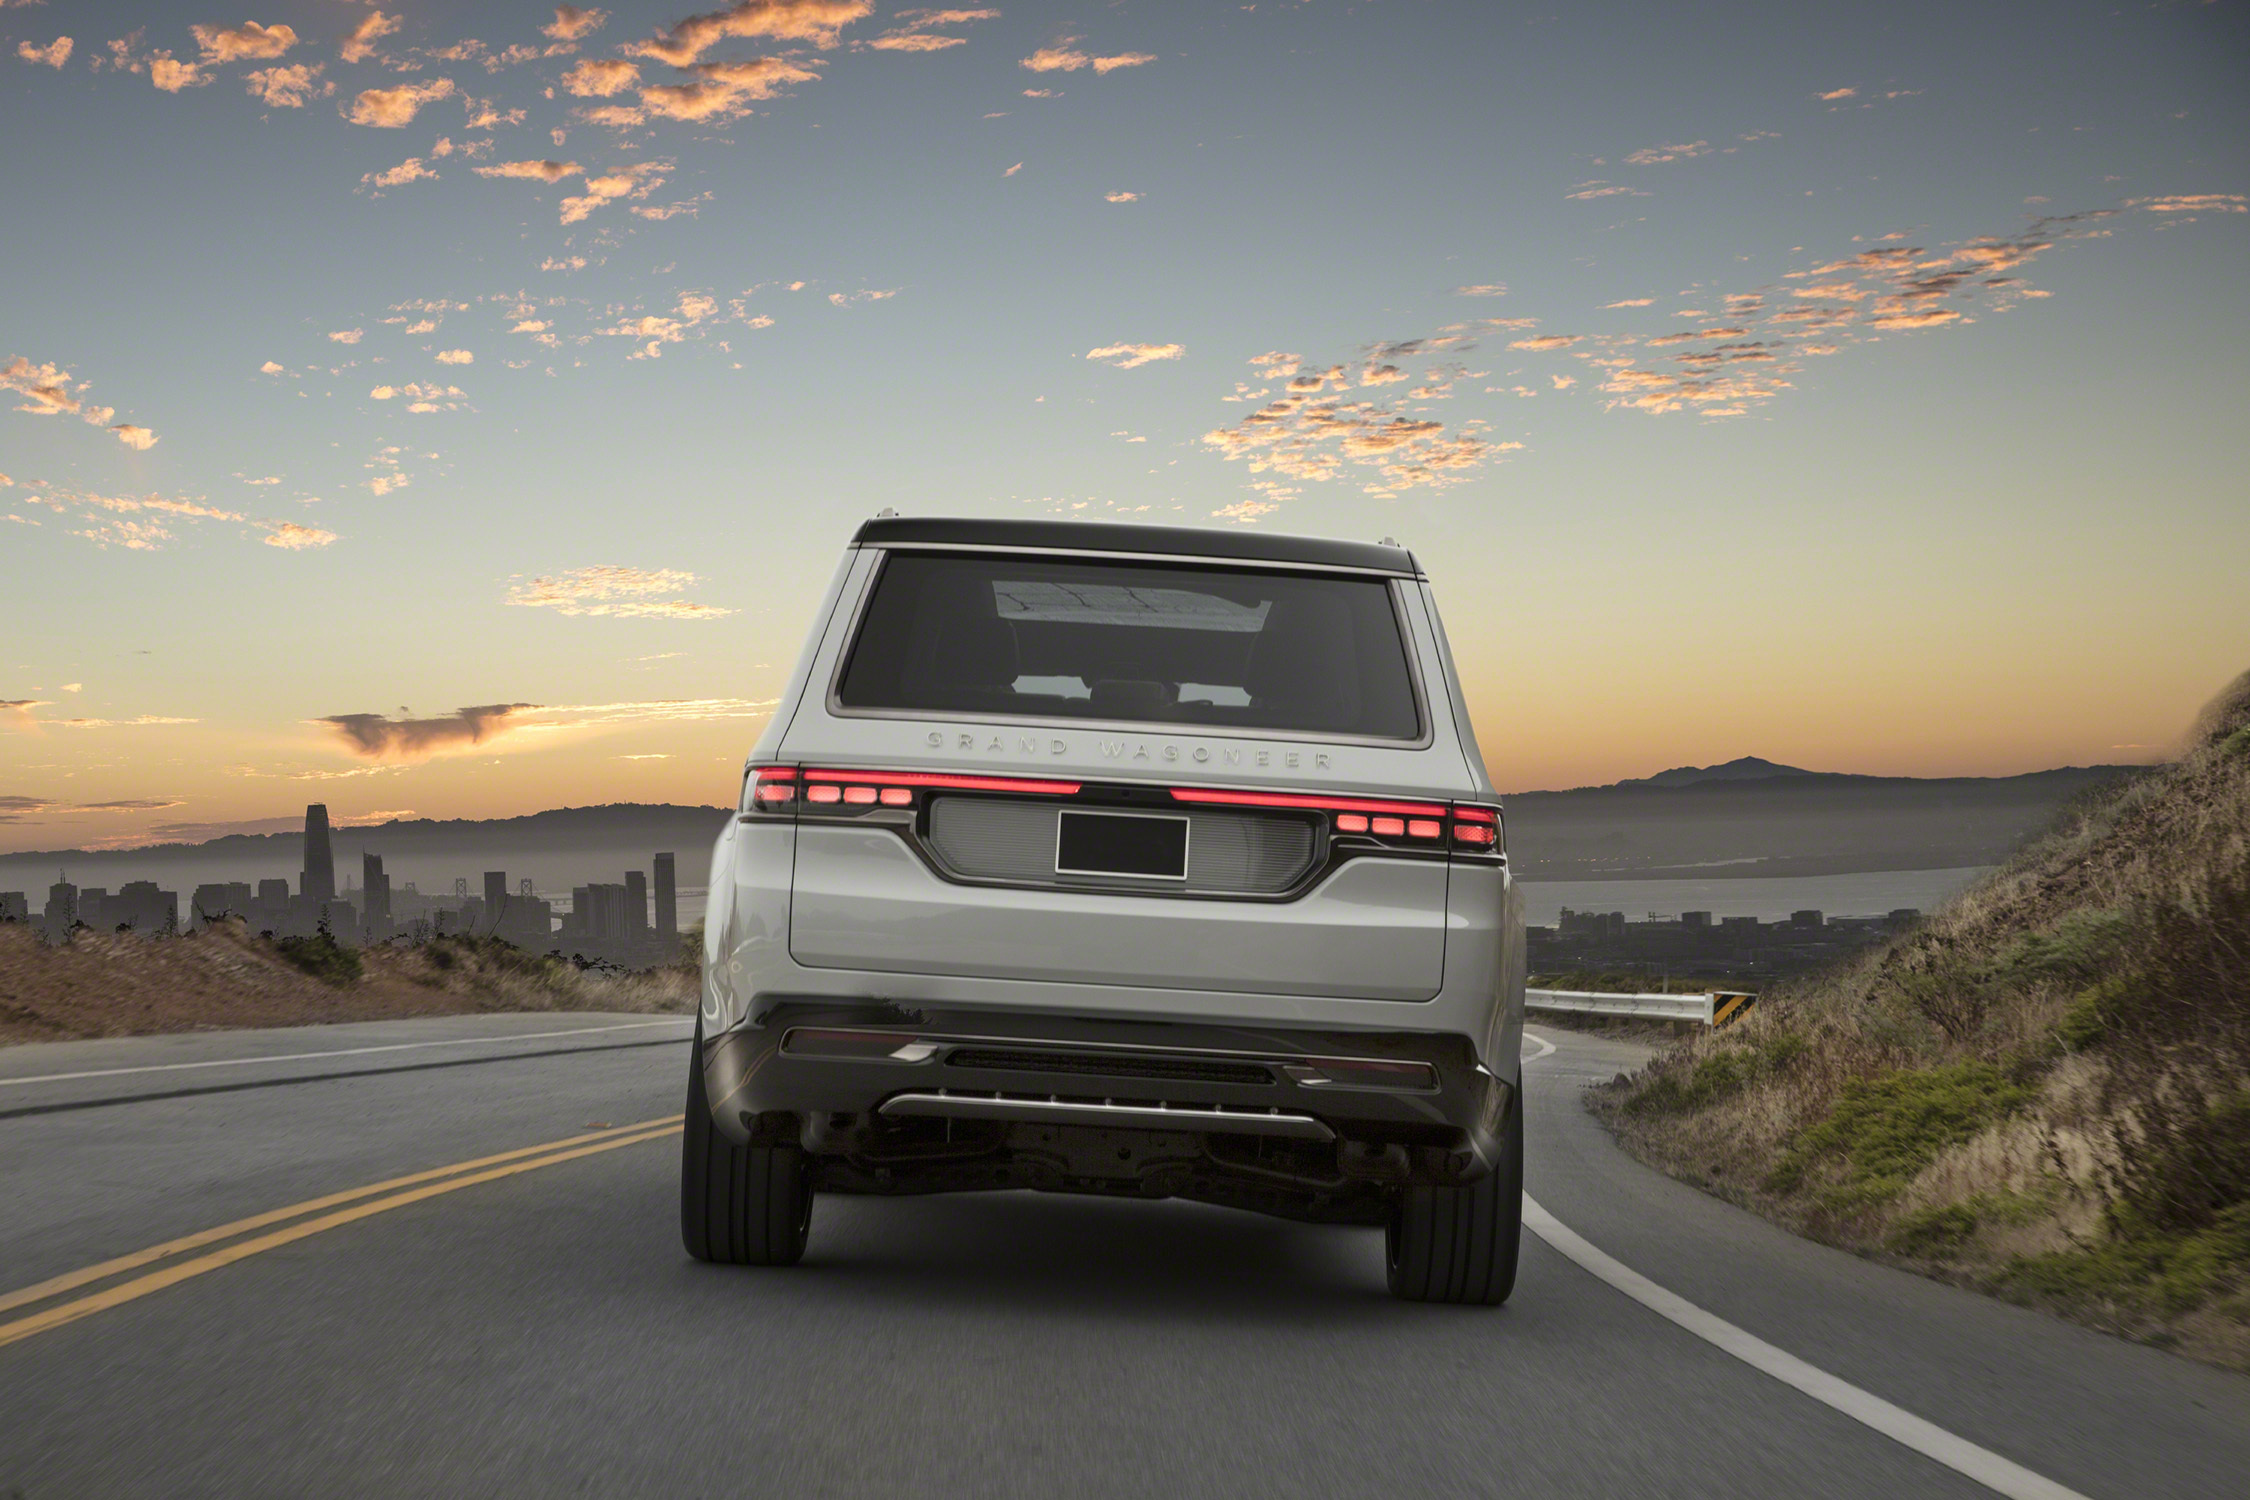 Grand Wagoneer Concept rear view on road